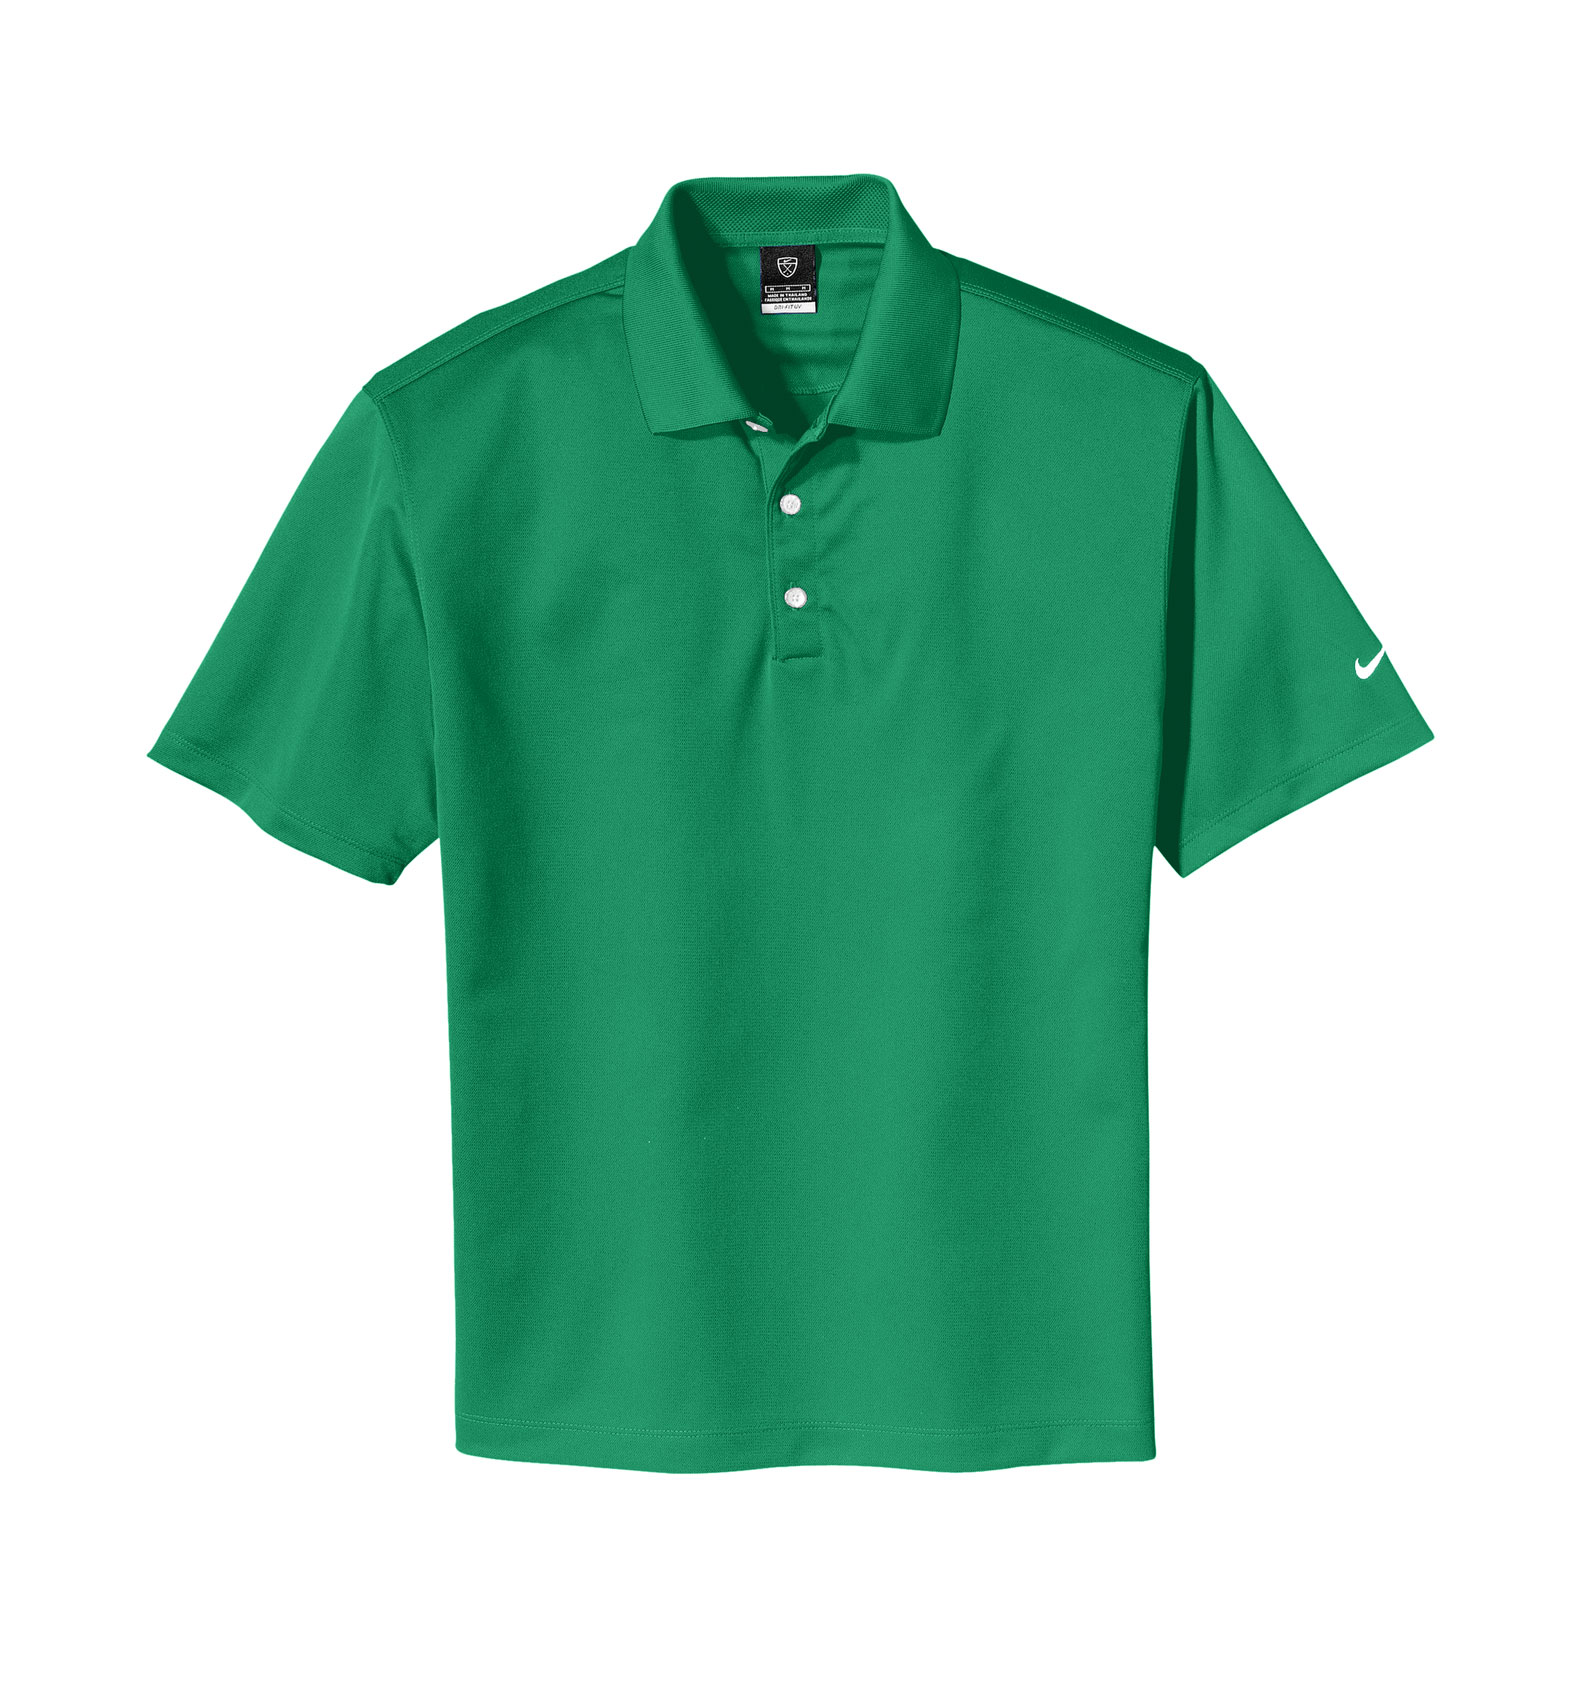 484f6b6e Custom Nike Golf Mens Tech Dri-Fit Polo